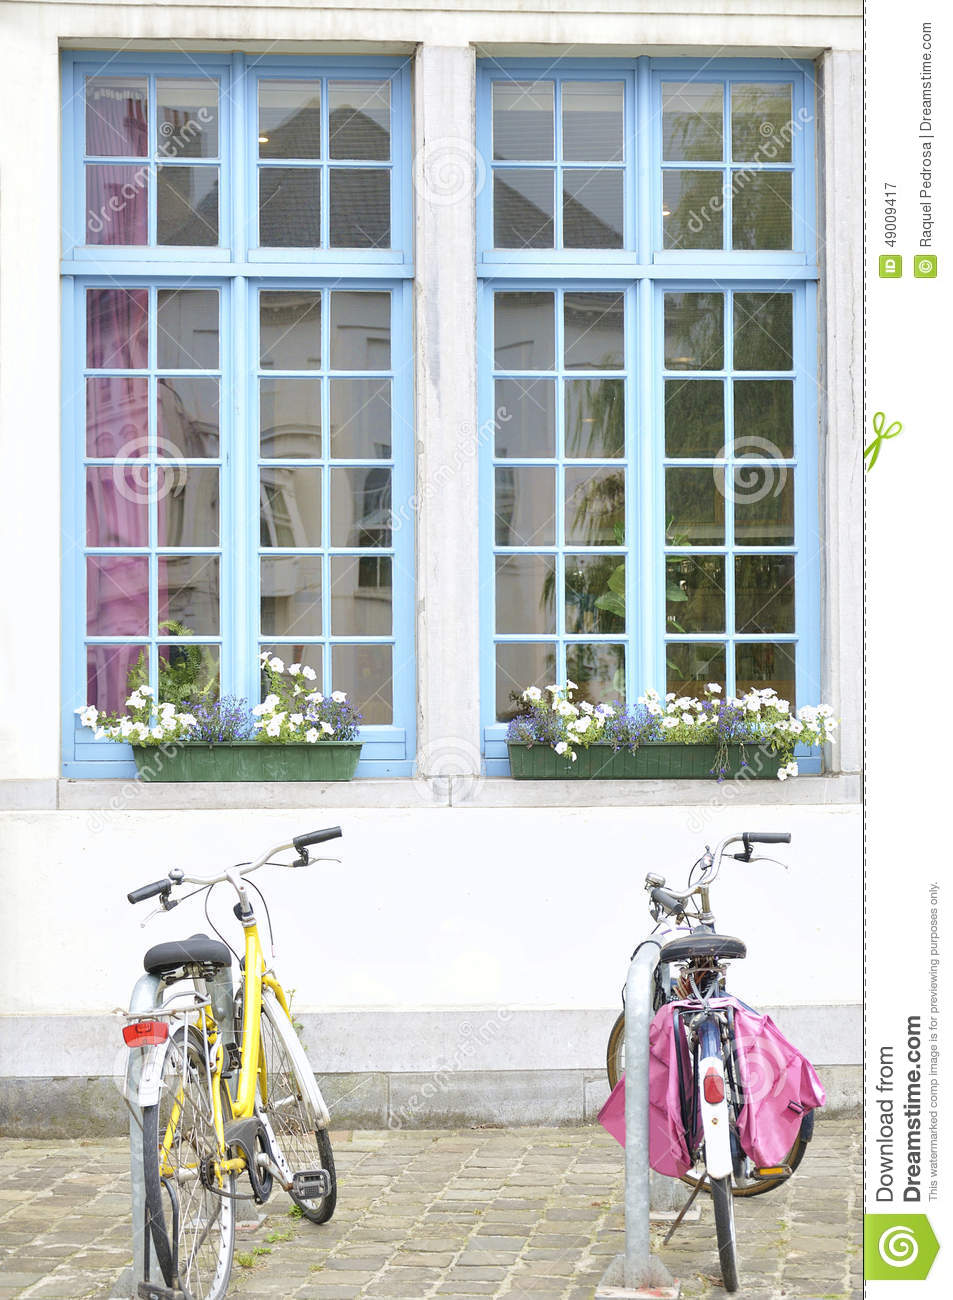 Stock Photo Bicycles White House Blue Windows Two Parked Front Image49009417 on vintage style house plans